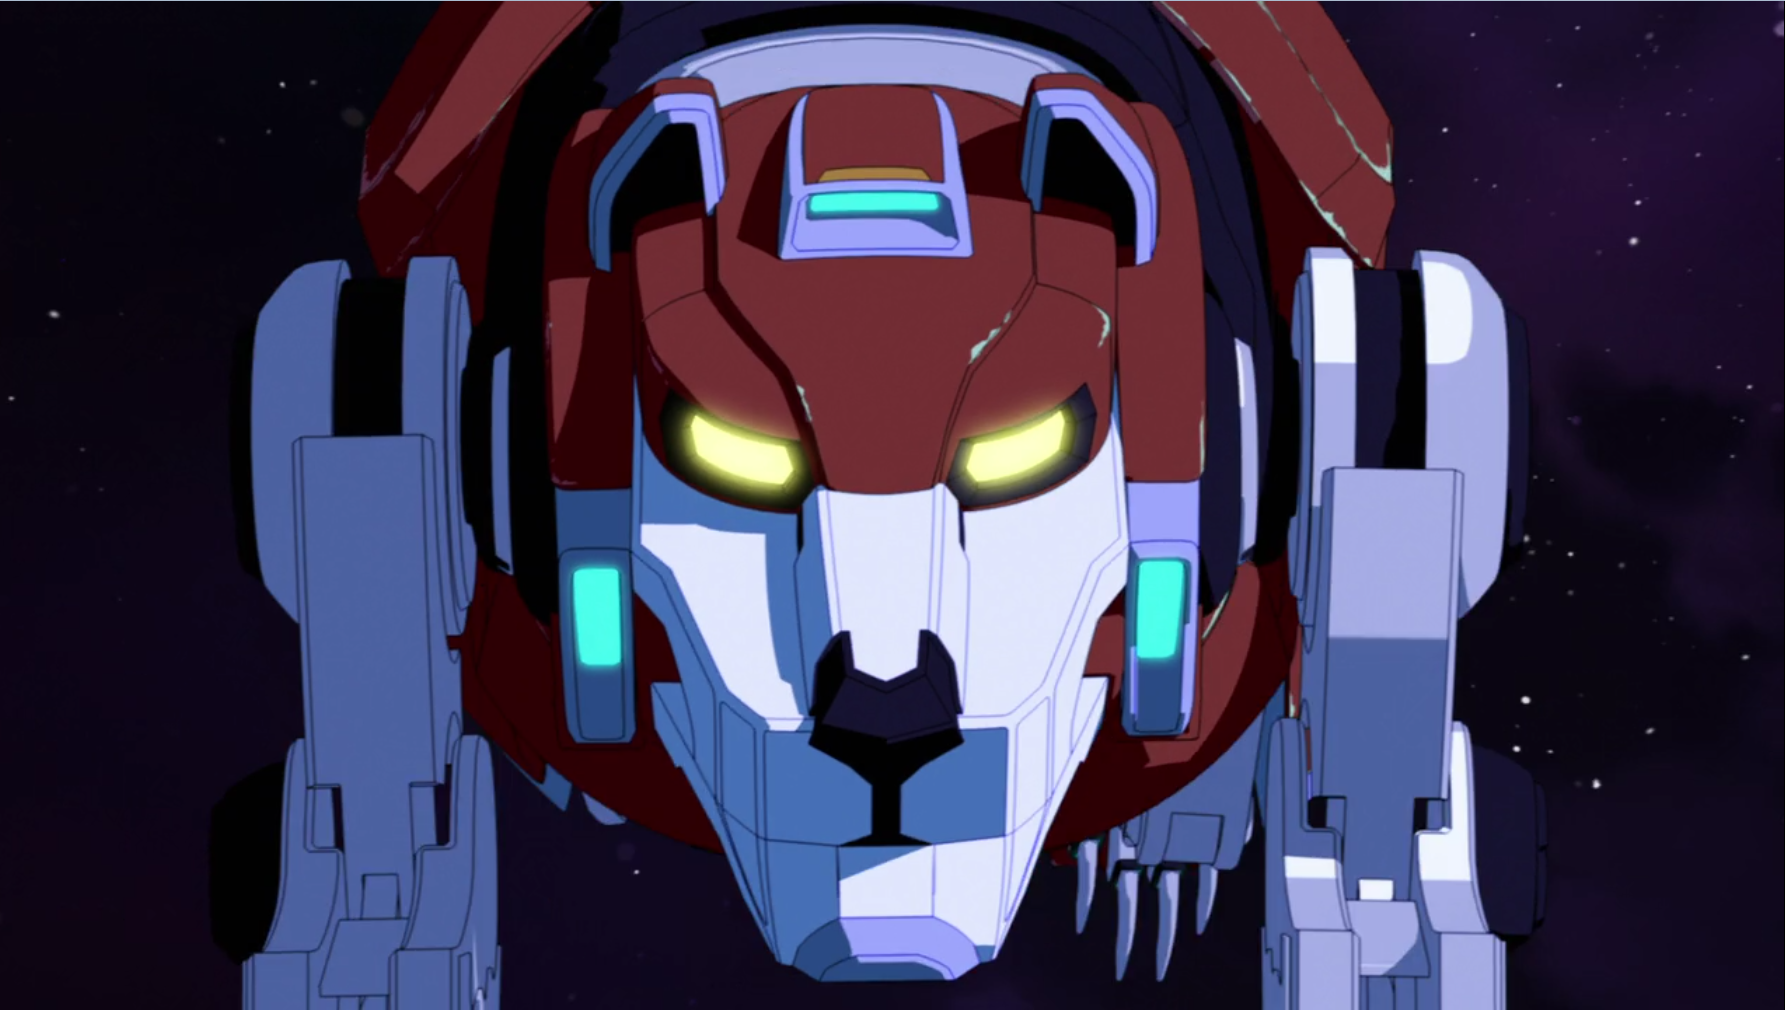 Pictures of voltron force List of Voltron characters - Wikipedia